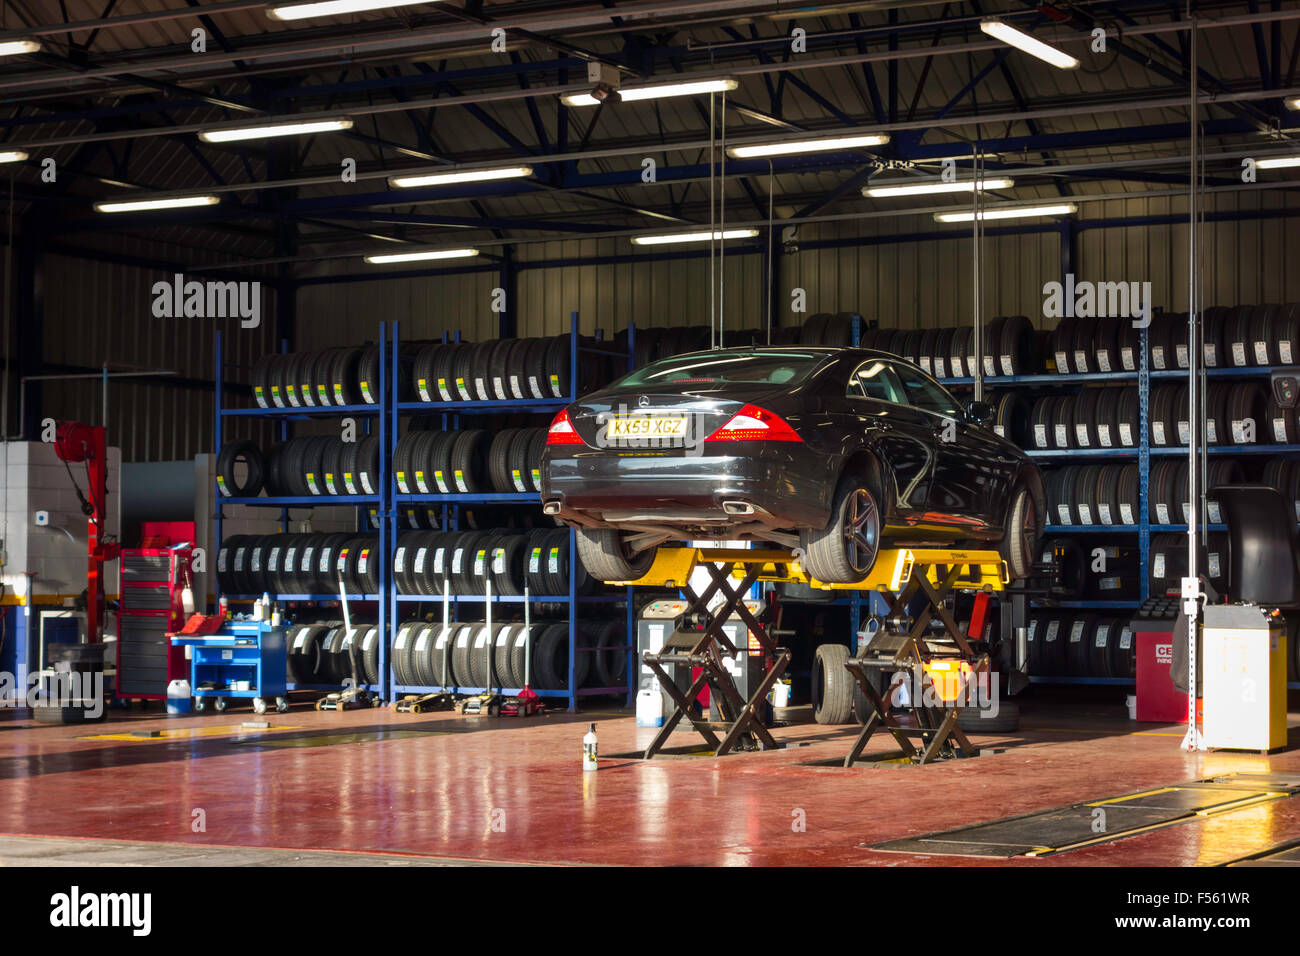 Kwik Fit motor vehicle tyre and exhaust repair and replacement facility - Stock Image